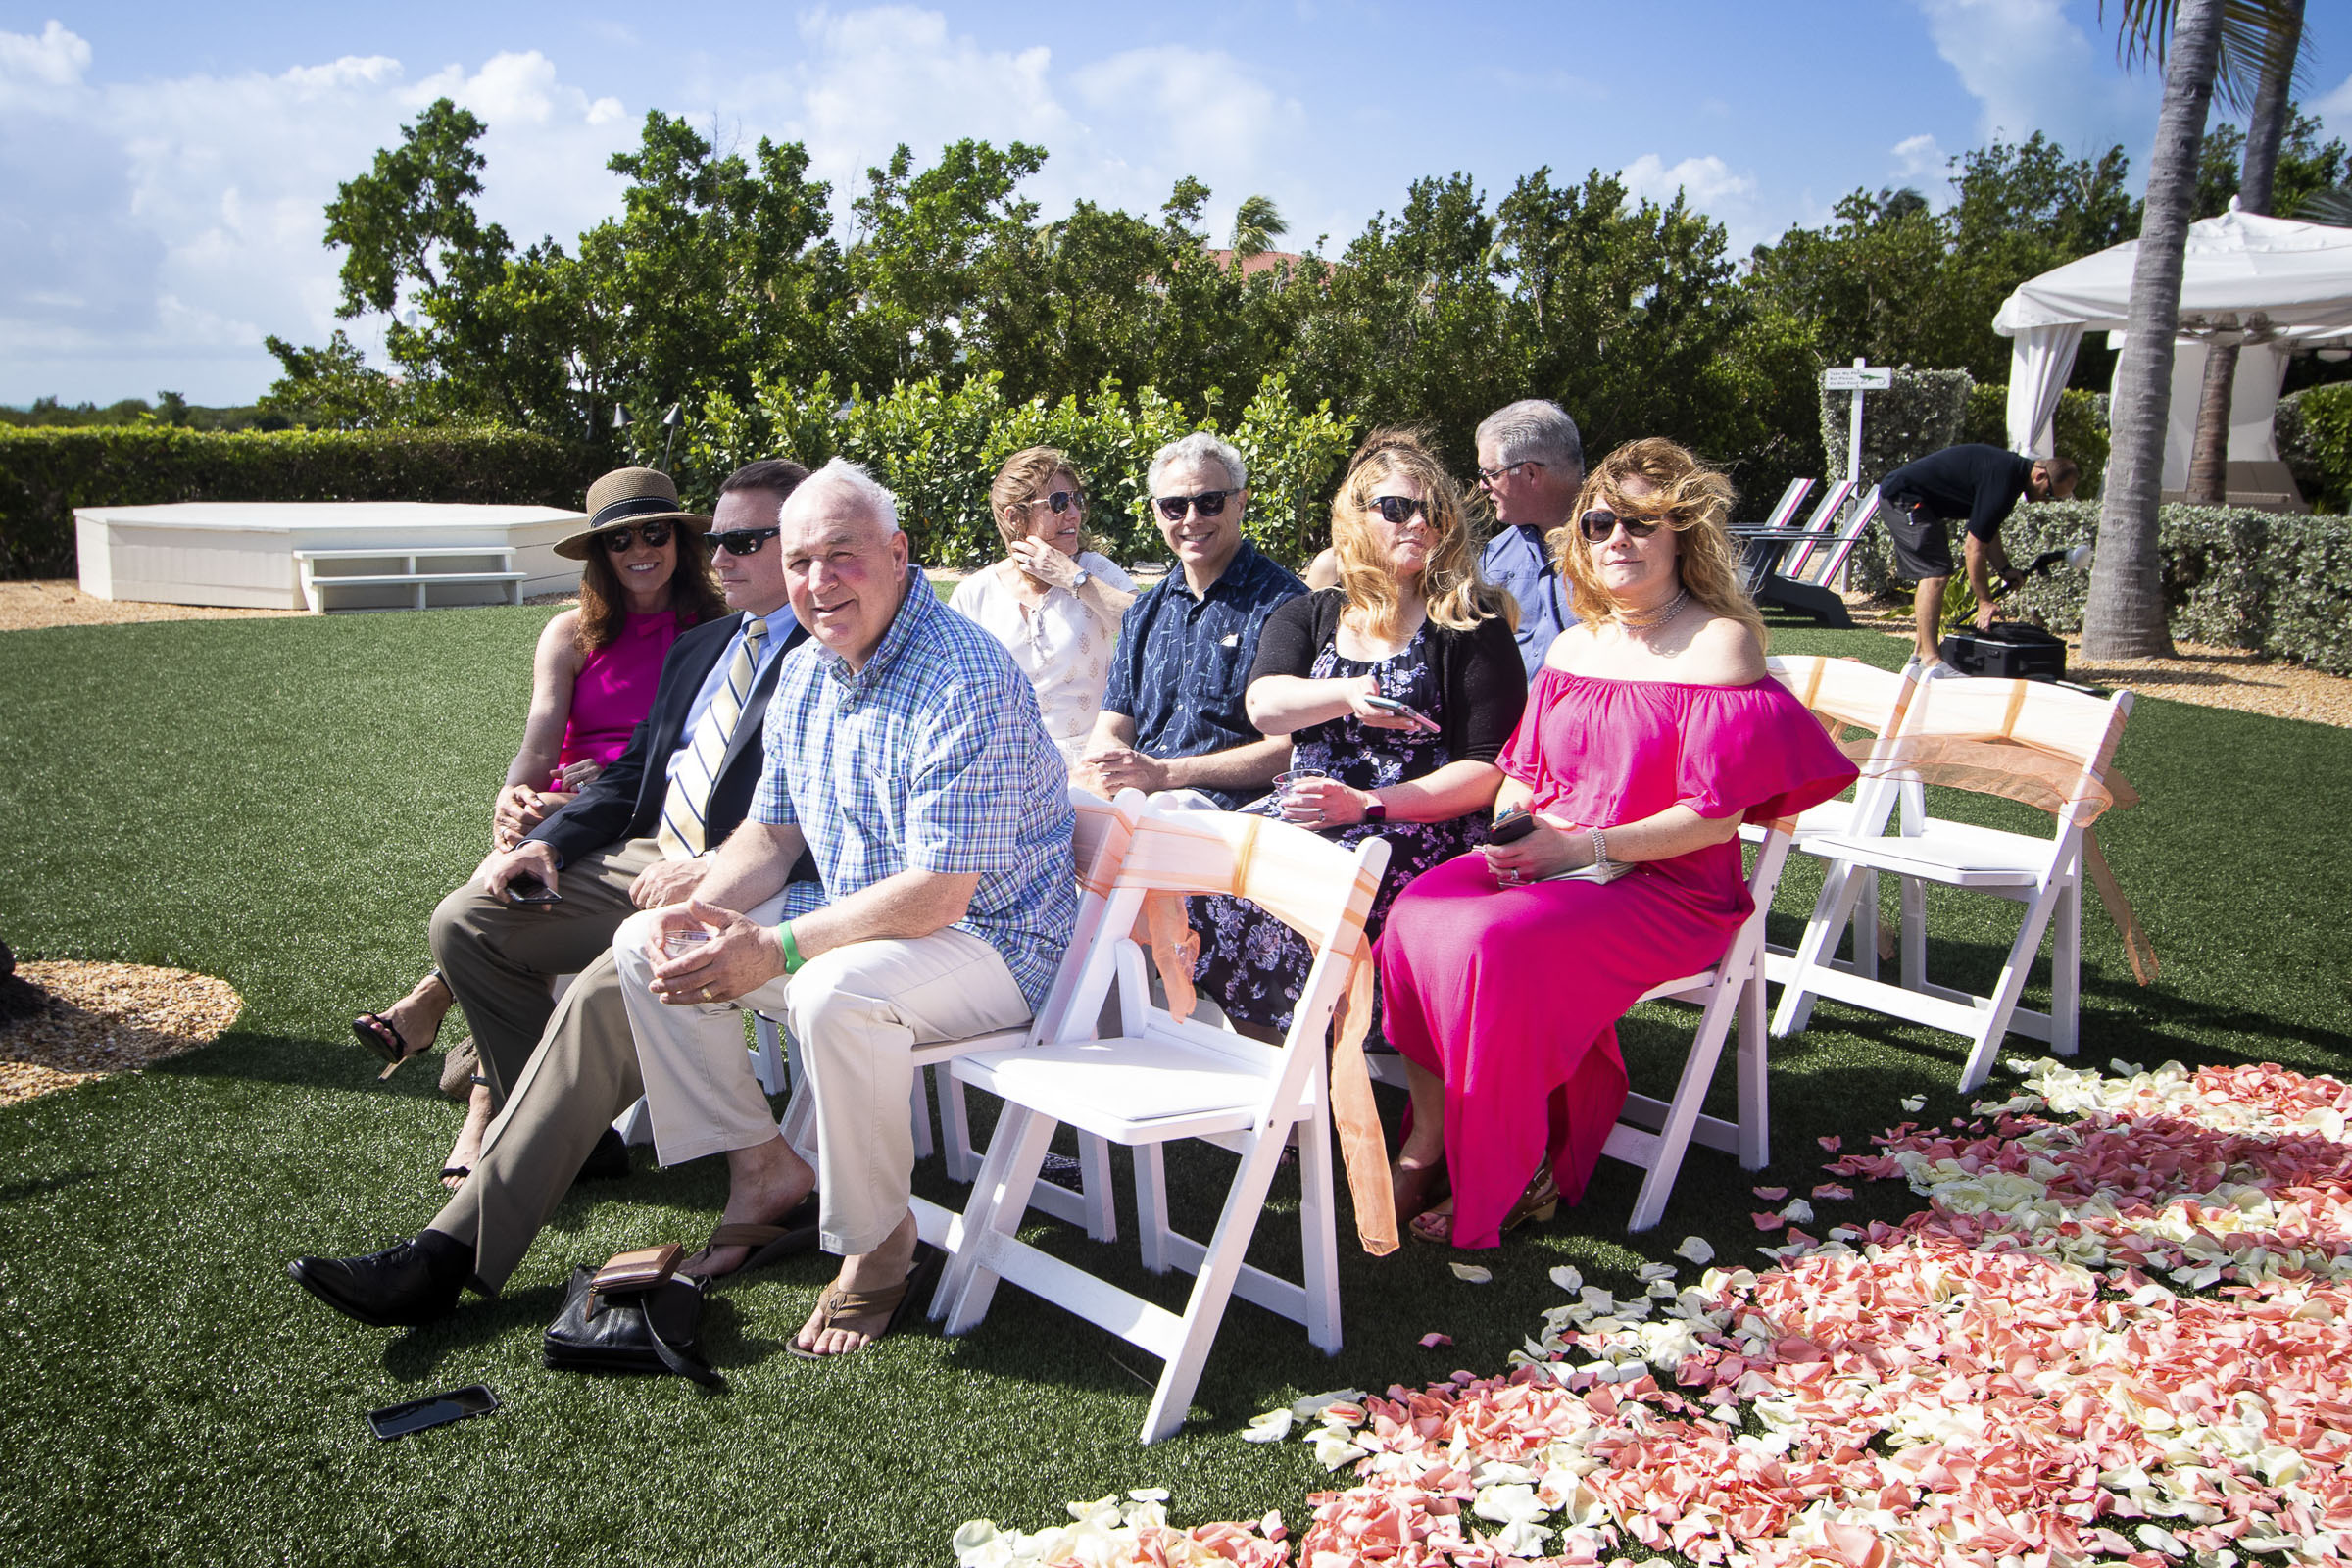 Guests of wedding waiting for the bride to walk down the aisle.jpg